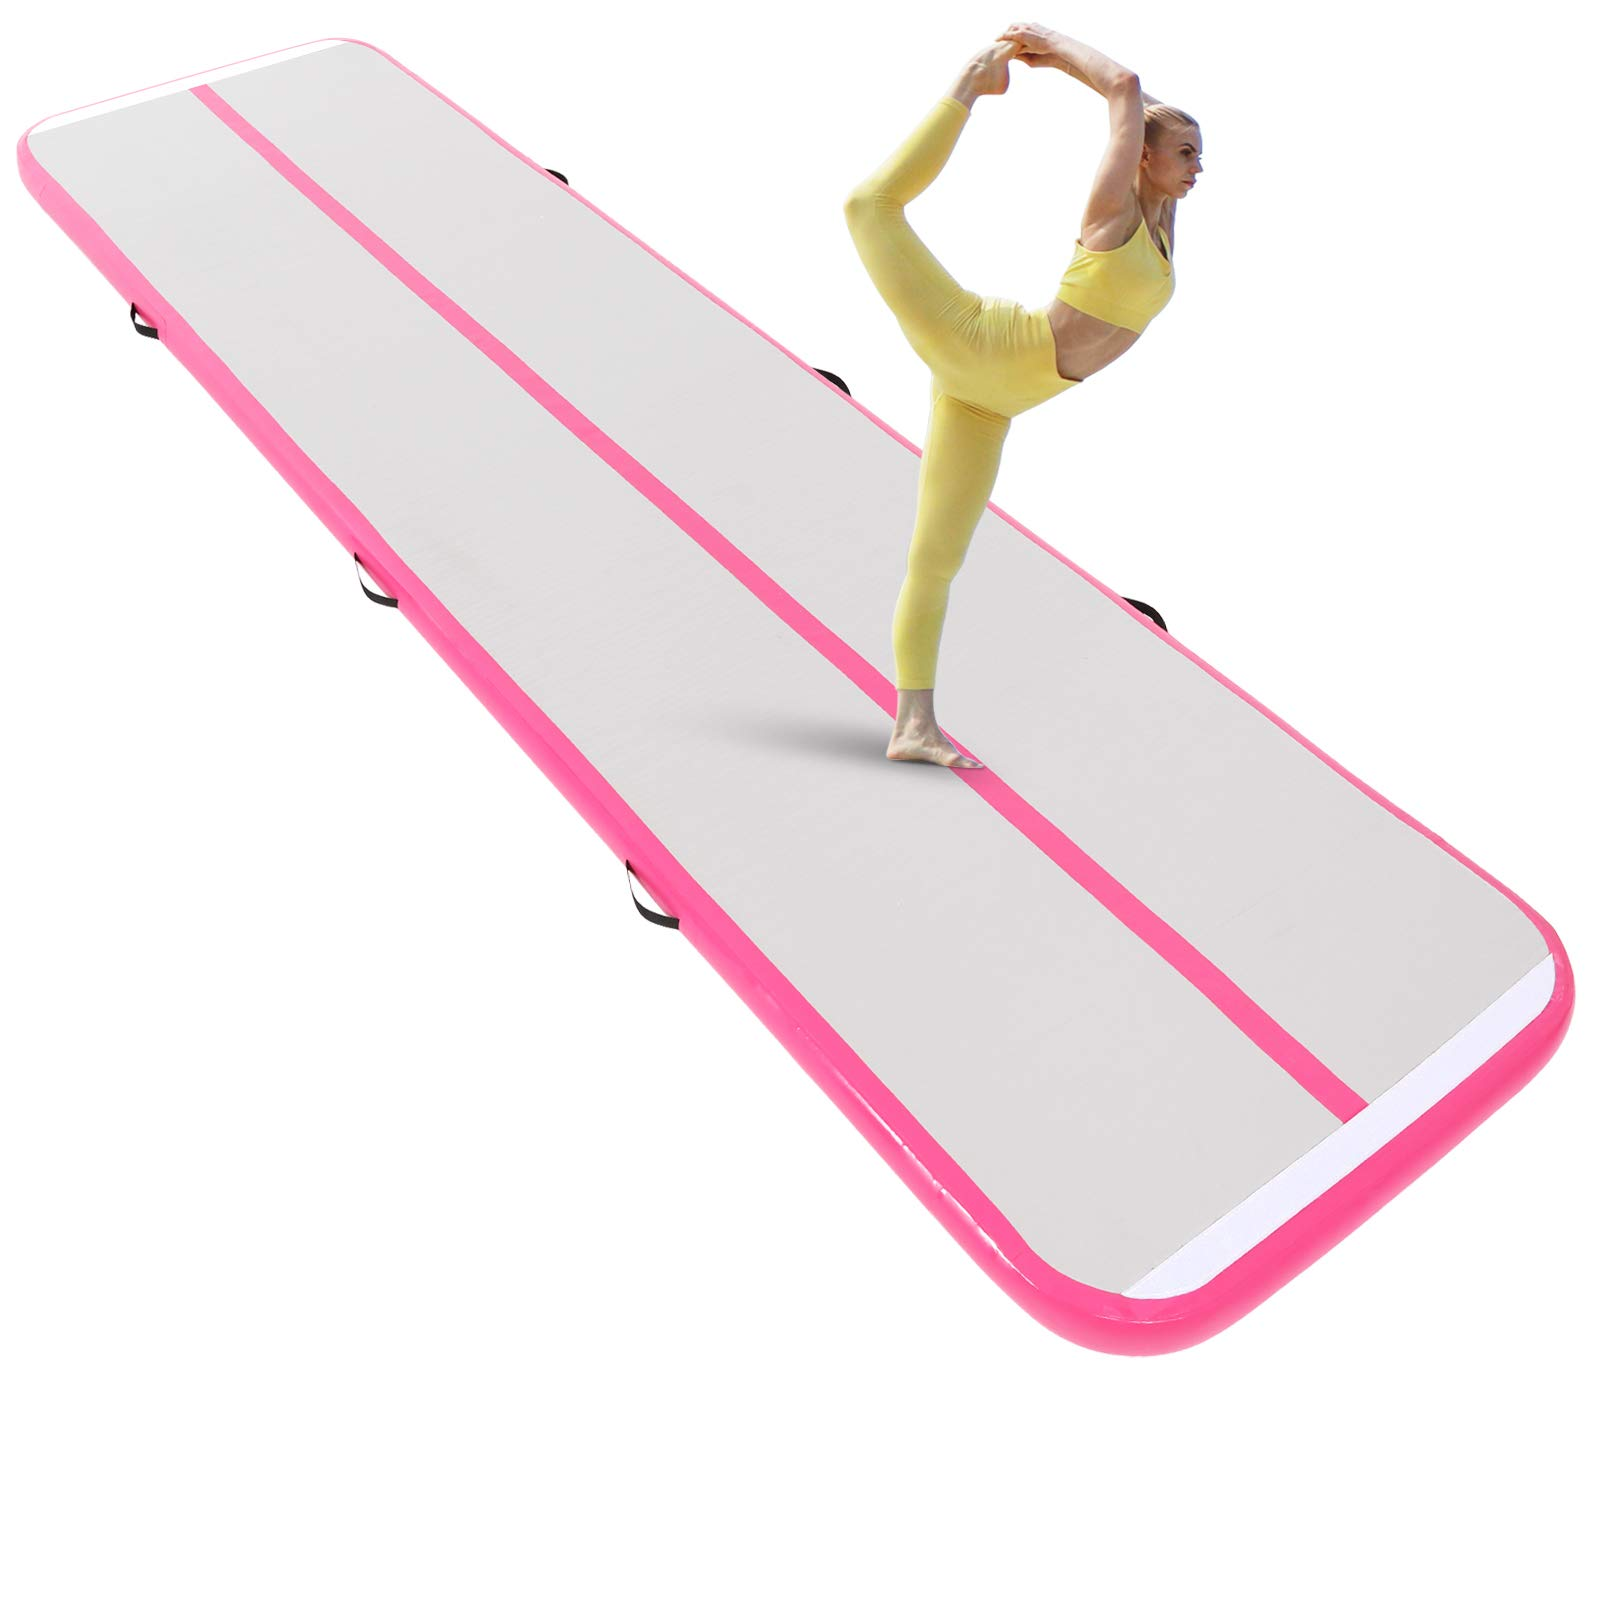 Naice Inflatable Airtrack, Air Gymnastics Mat, Training Tumbling Mat,10ft/13ft/16ft Tumble Tracks Air Floor Track with Electric Air Pump for Indoor/Gym/Outdoor/Yoga/Water/School Use